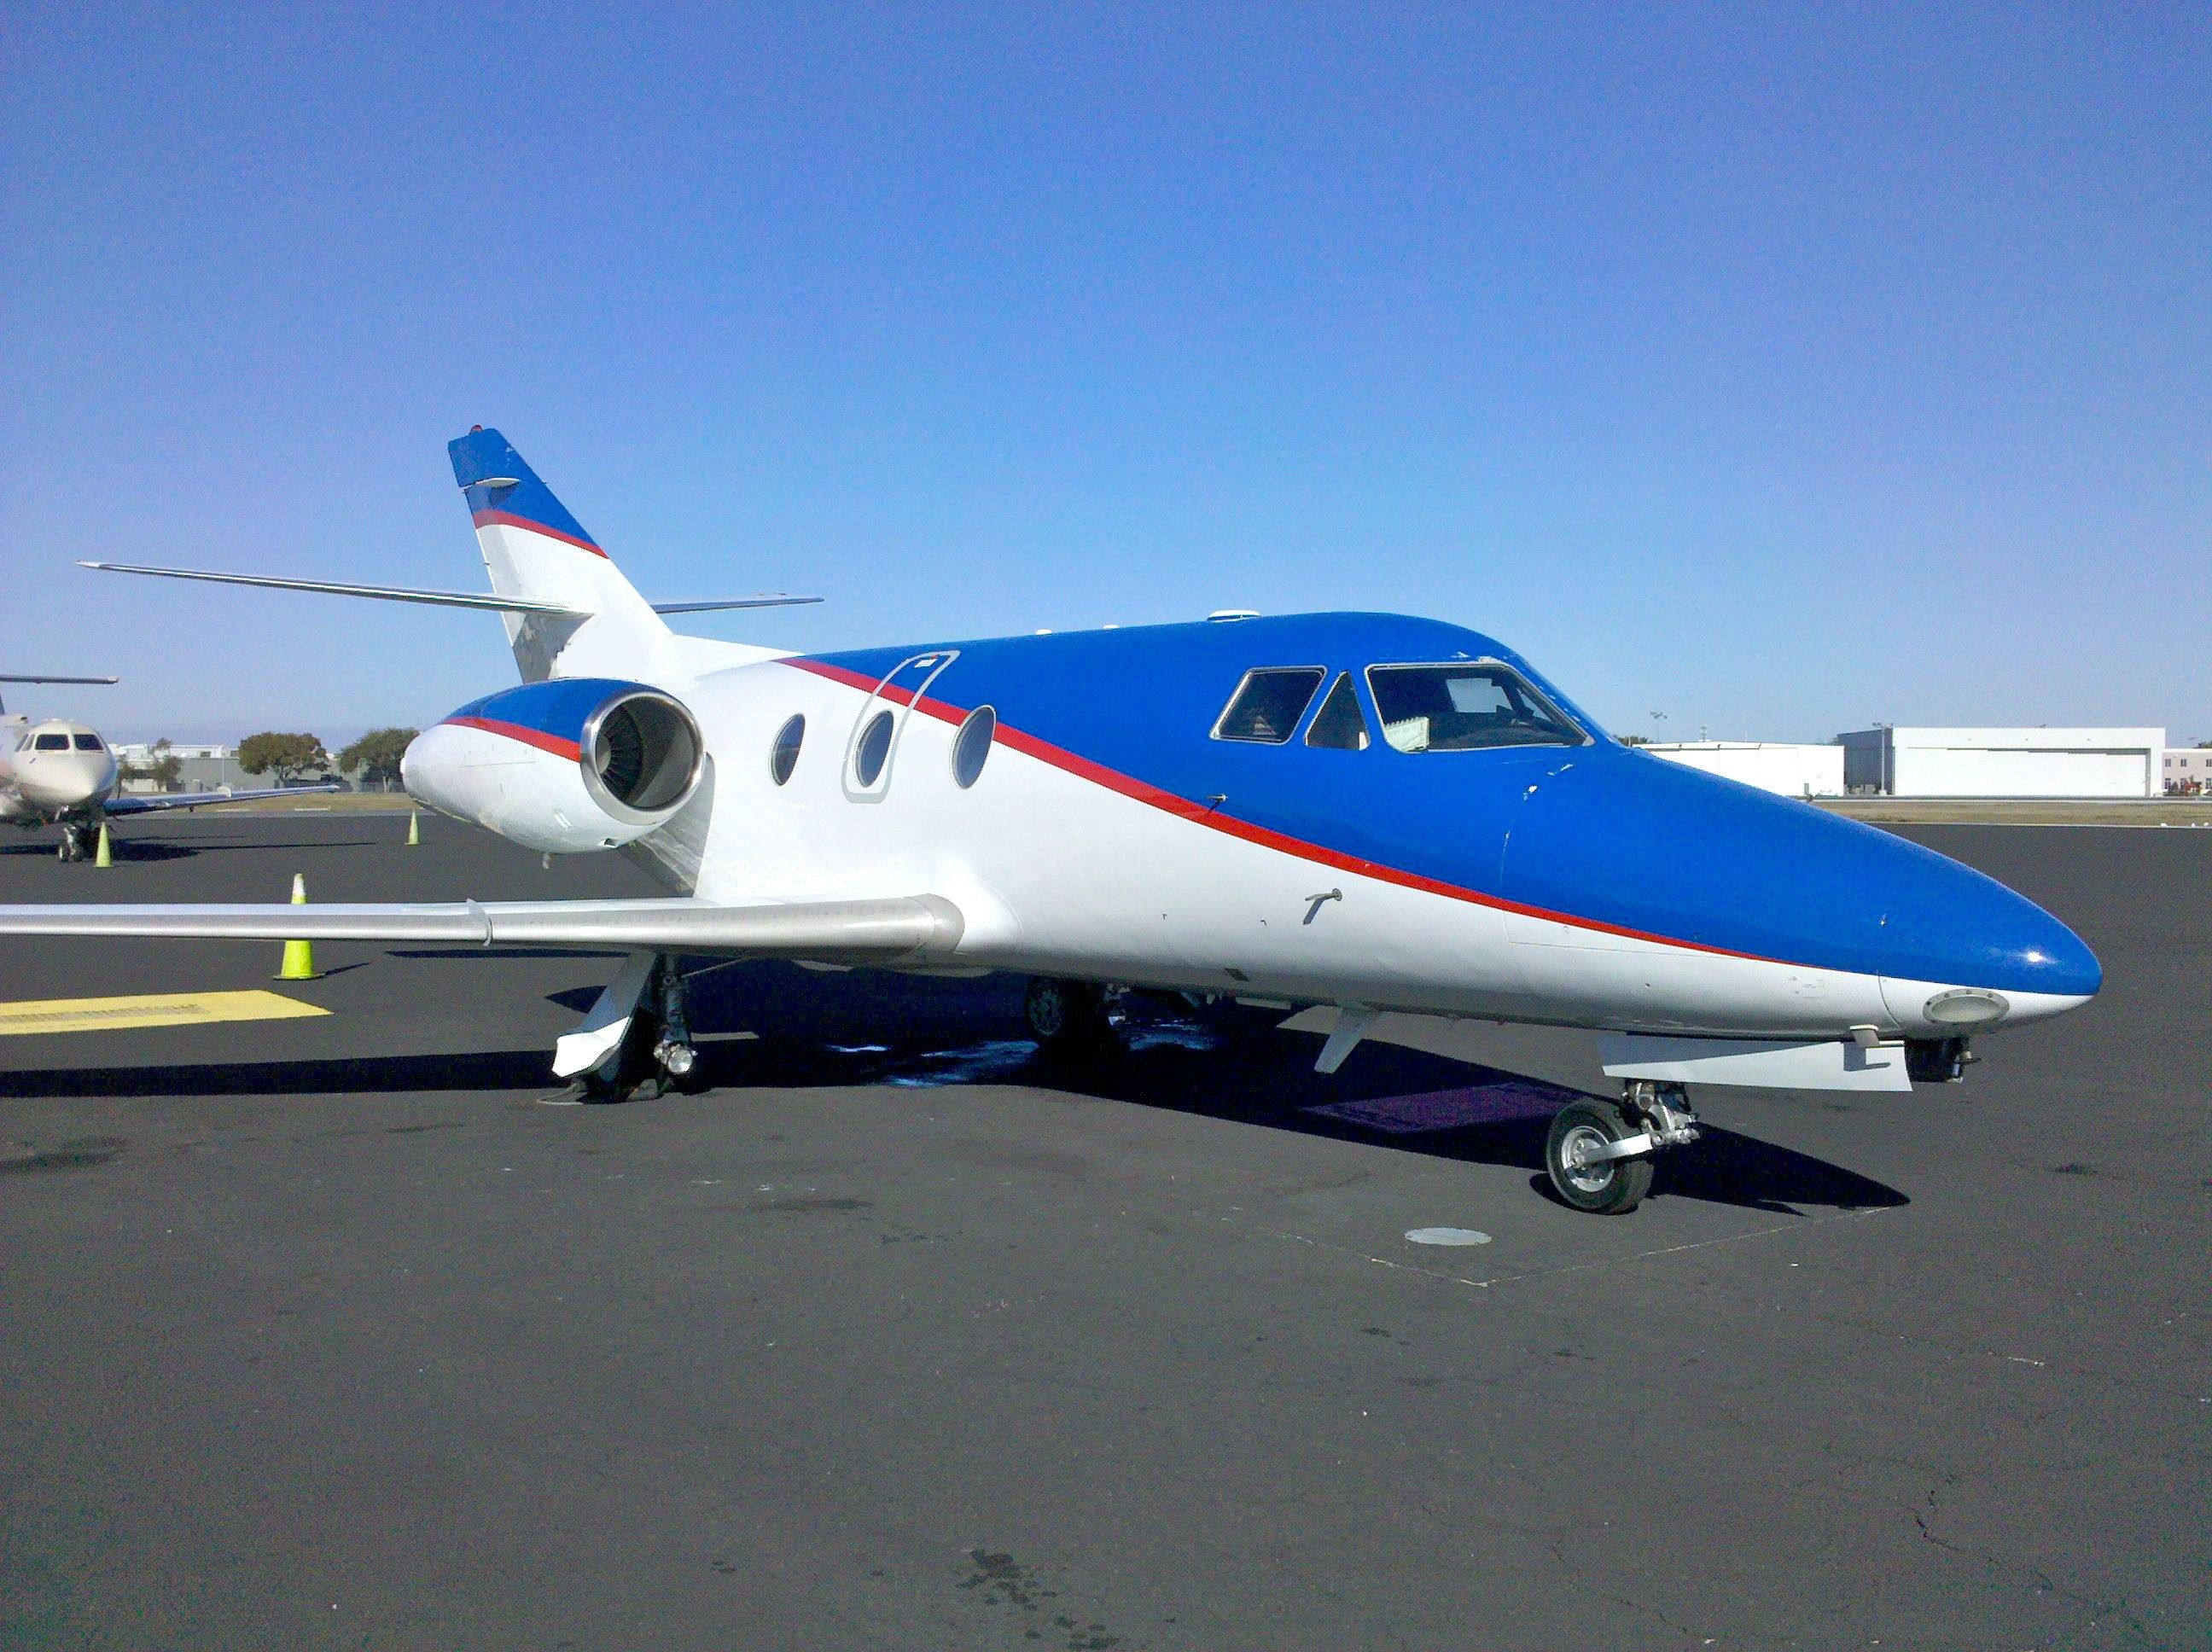 The Falcon 10 charter jet is a high performance business